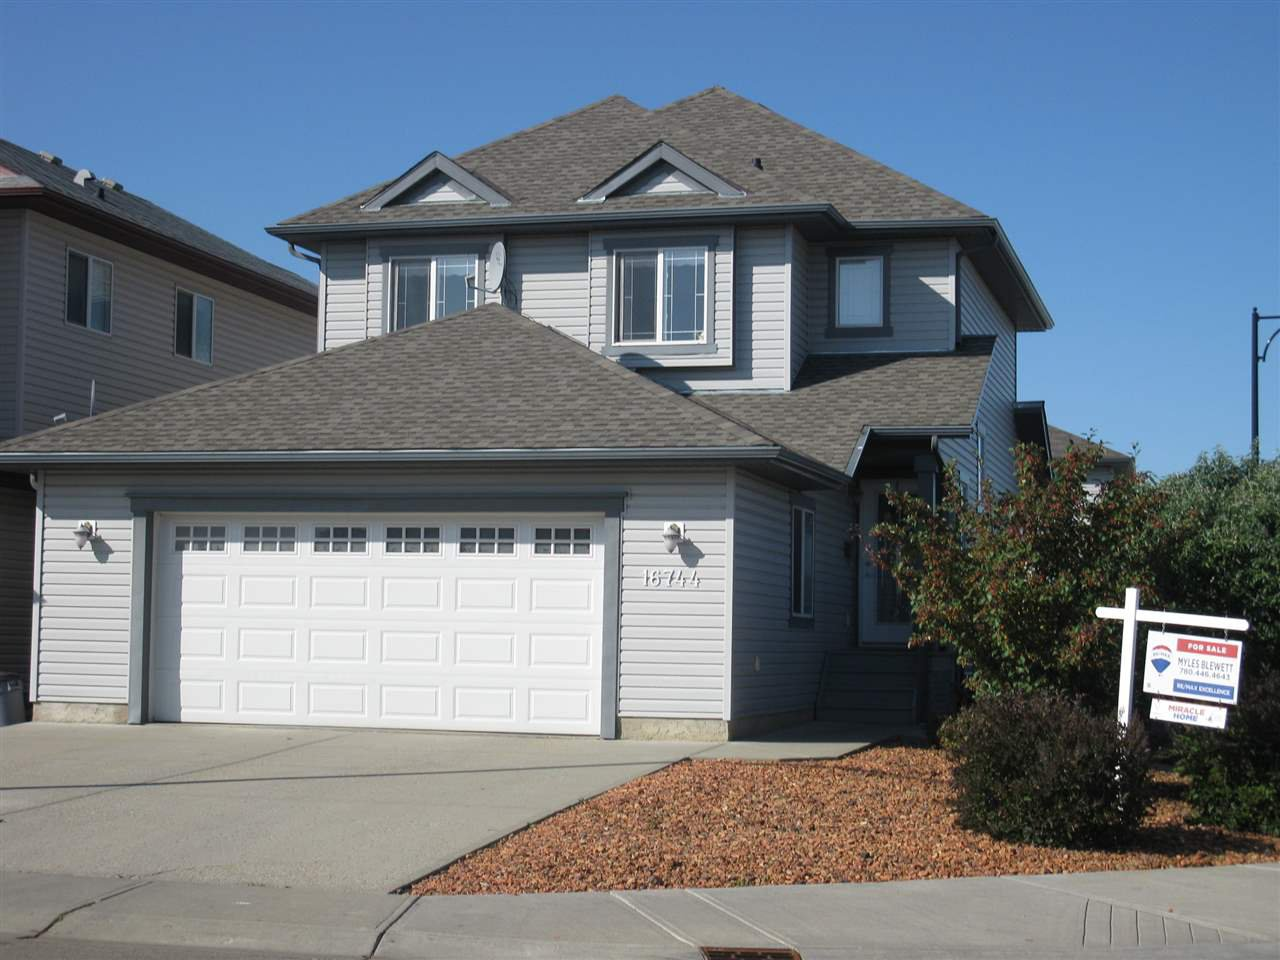 Main Photo: 16744 119 Street in Edmonton: Zone 27 House for sale : MLS®# E4166387